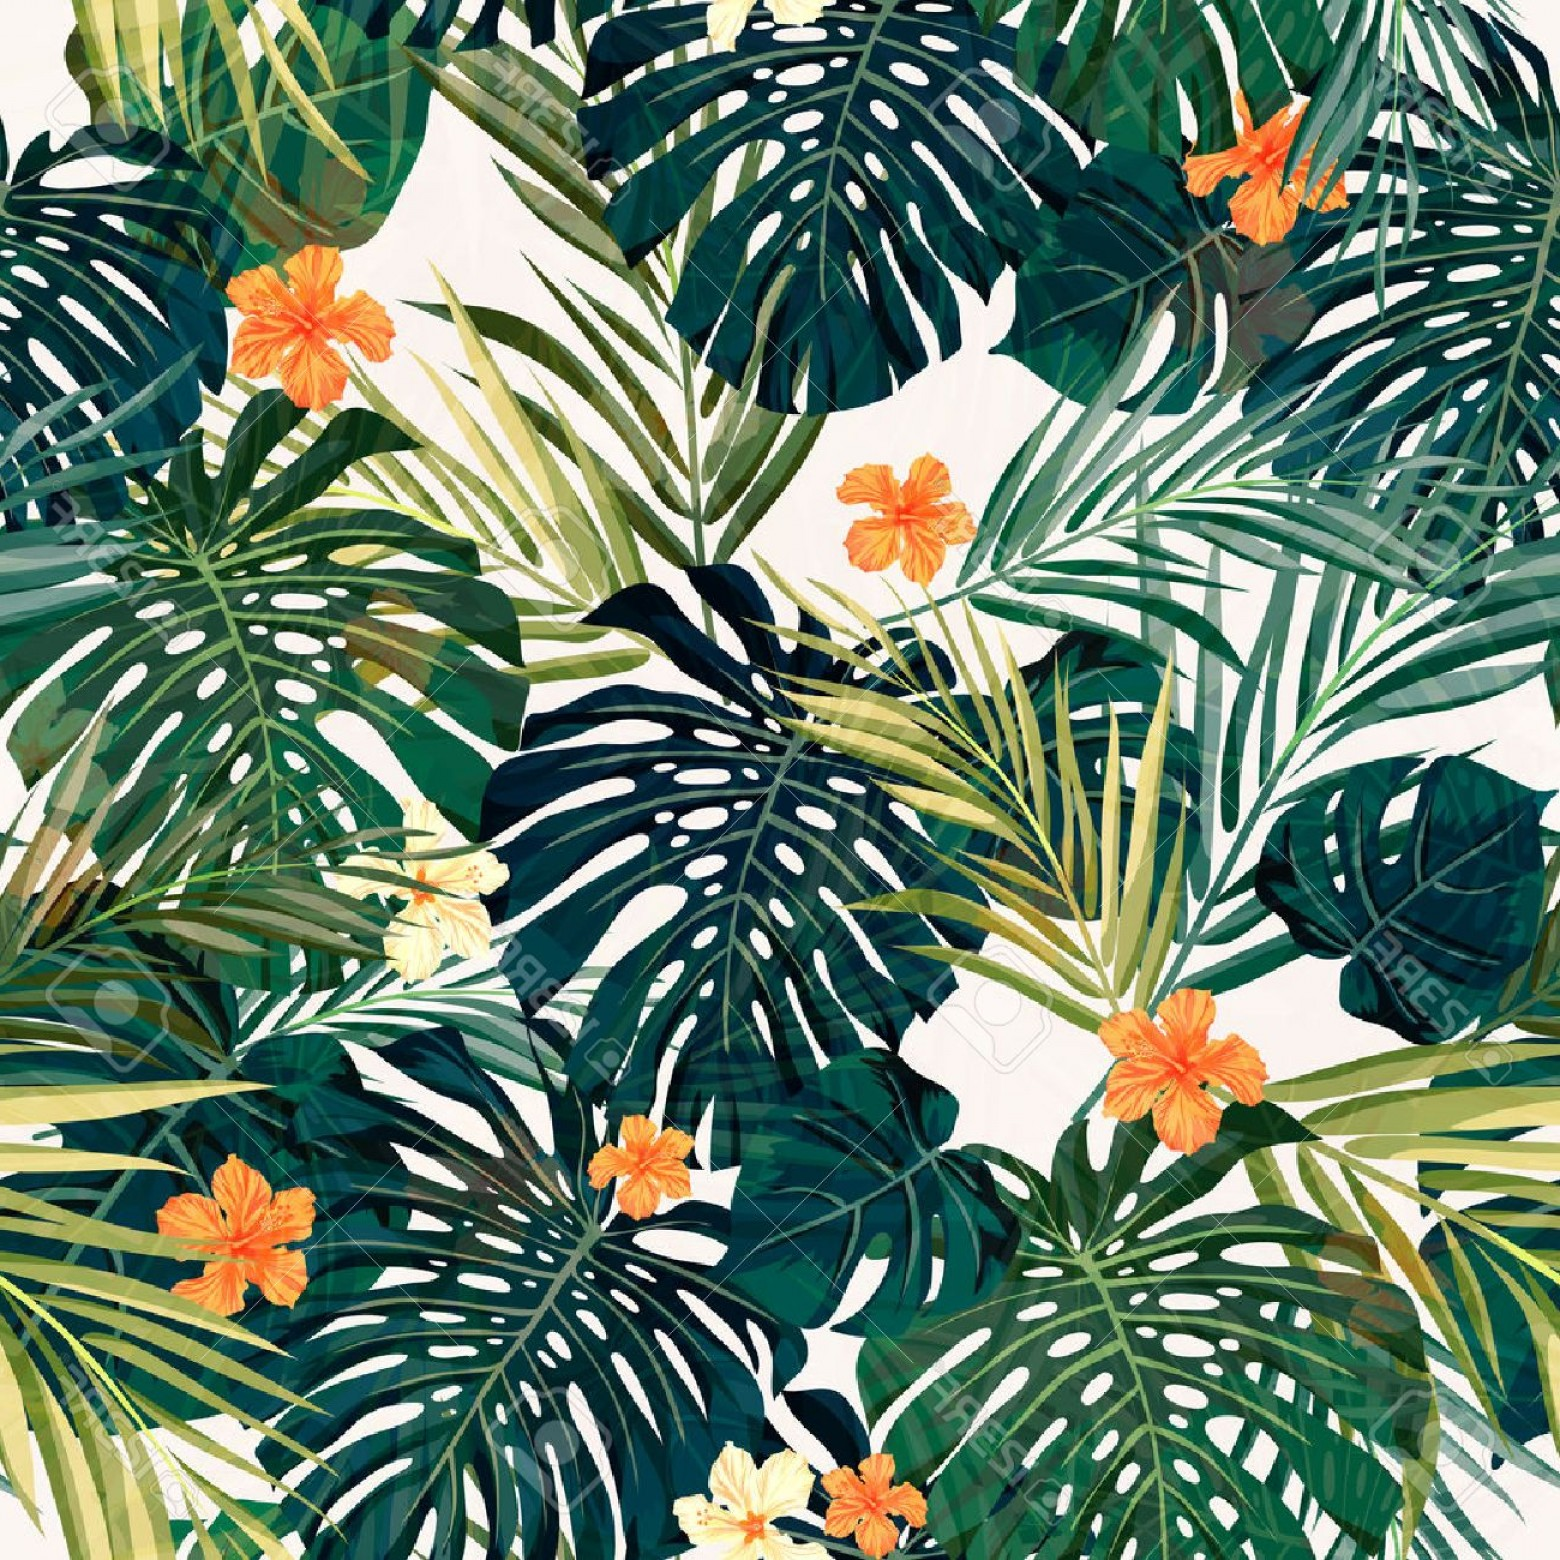 Hawaiian Flower Seamless Vector Pattern: Unique Photostock Vector Summer Colorful Hawaiian Seamless Pattern With Tropical Plants And Hibiscus Flowers Vector Illustrat